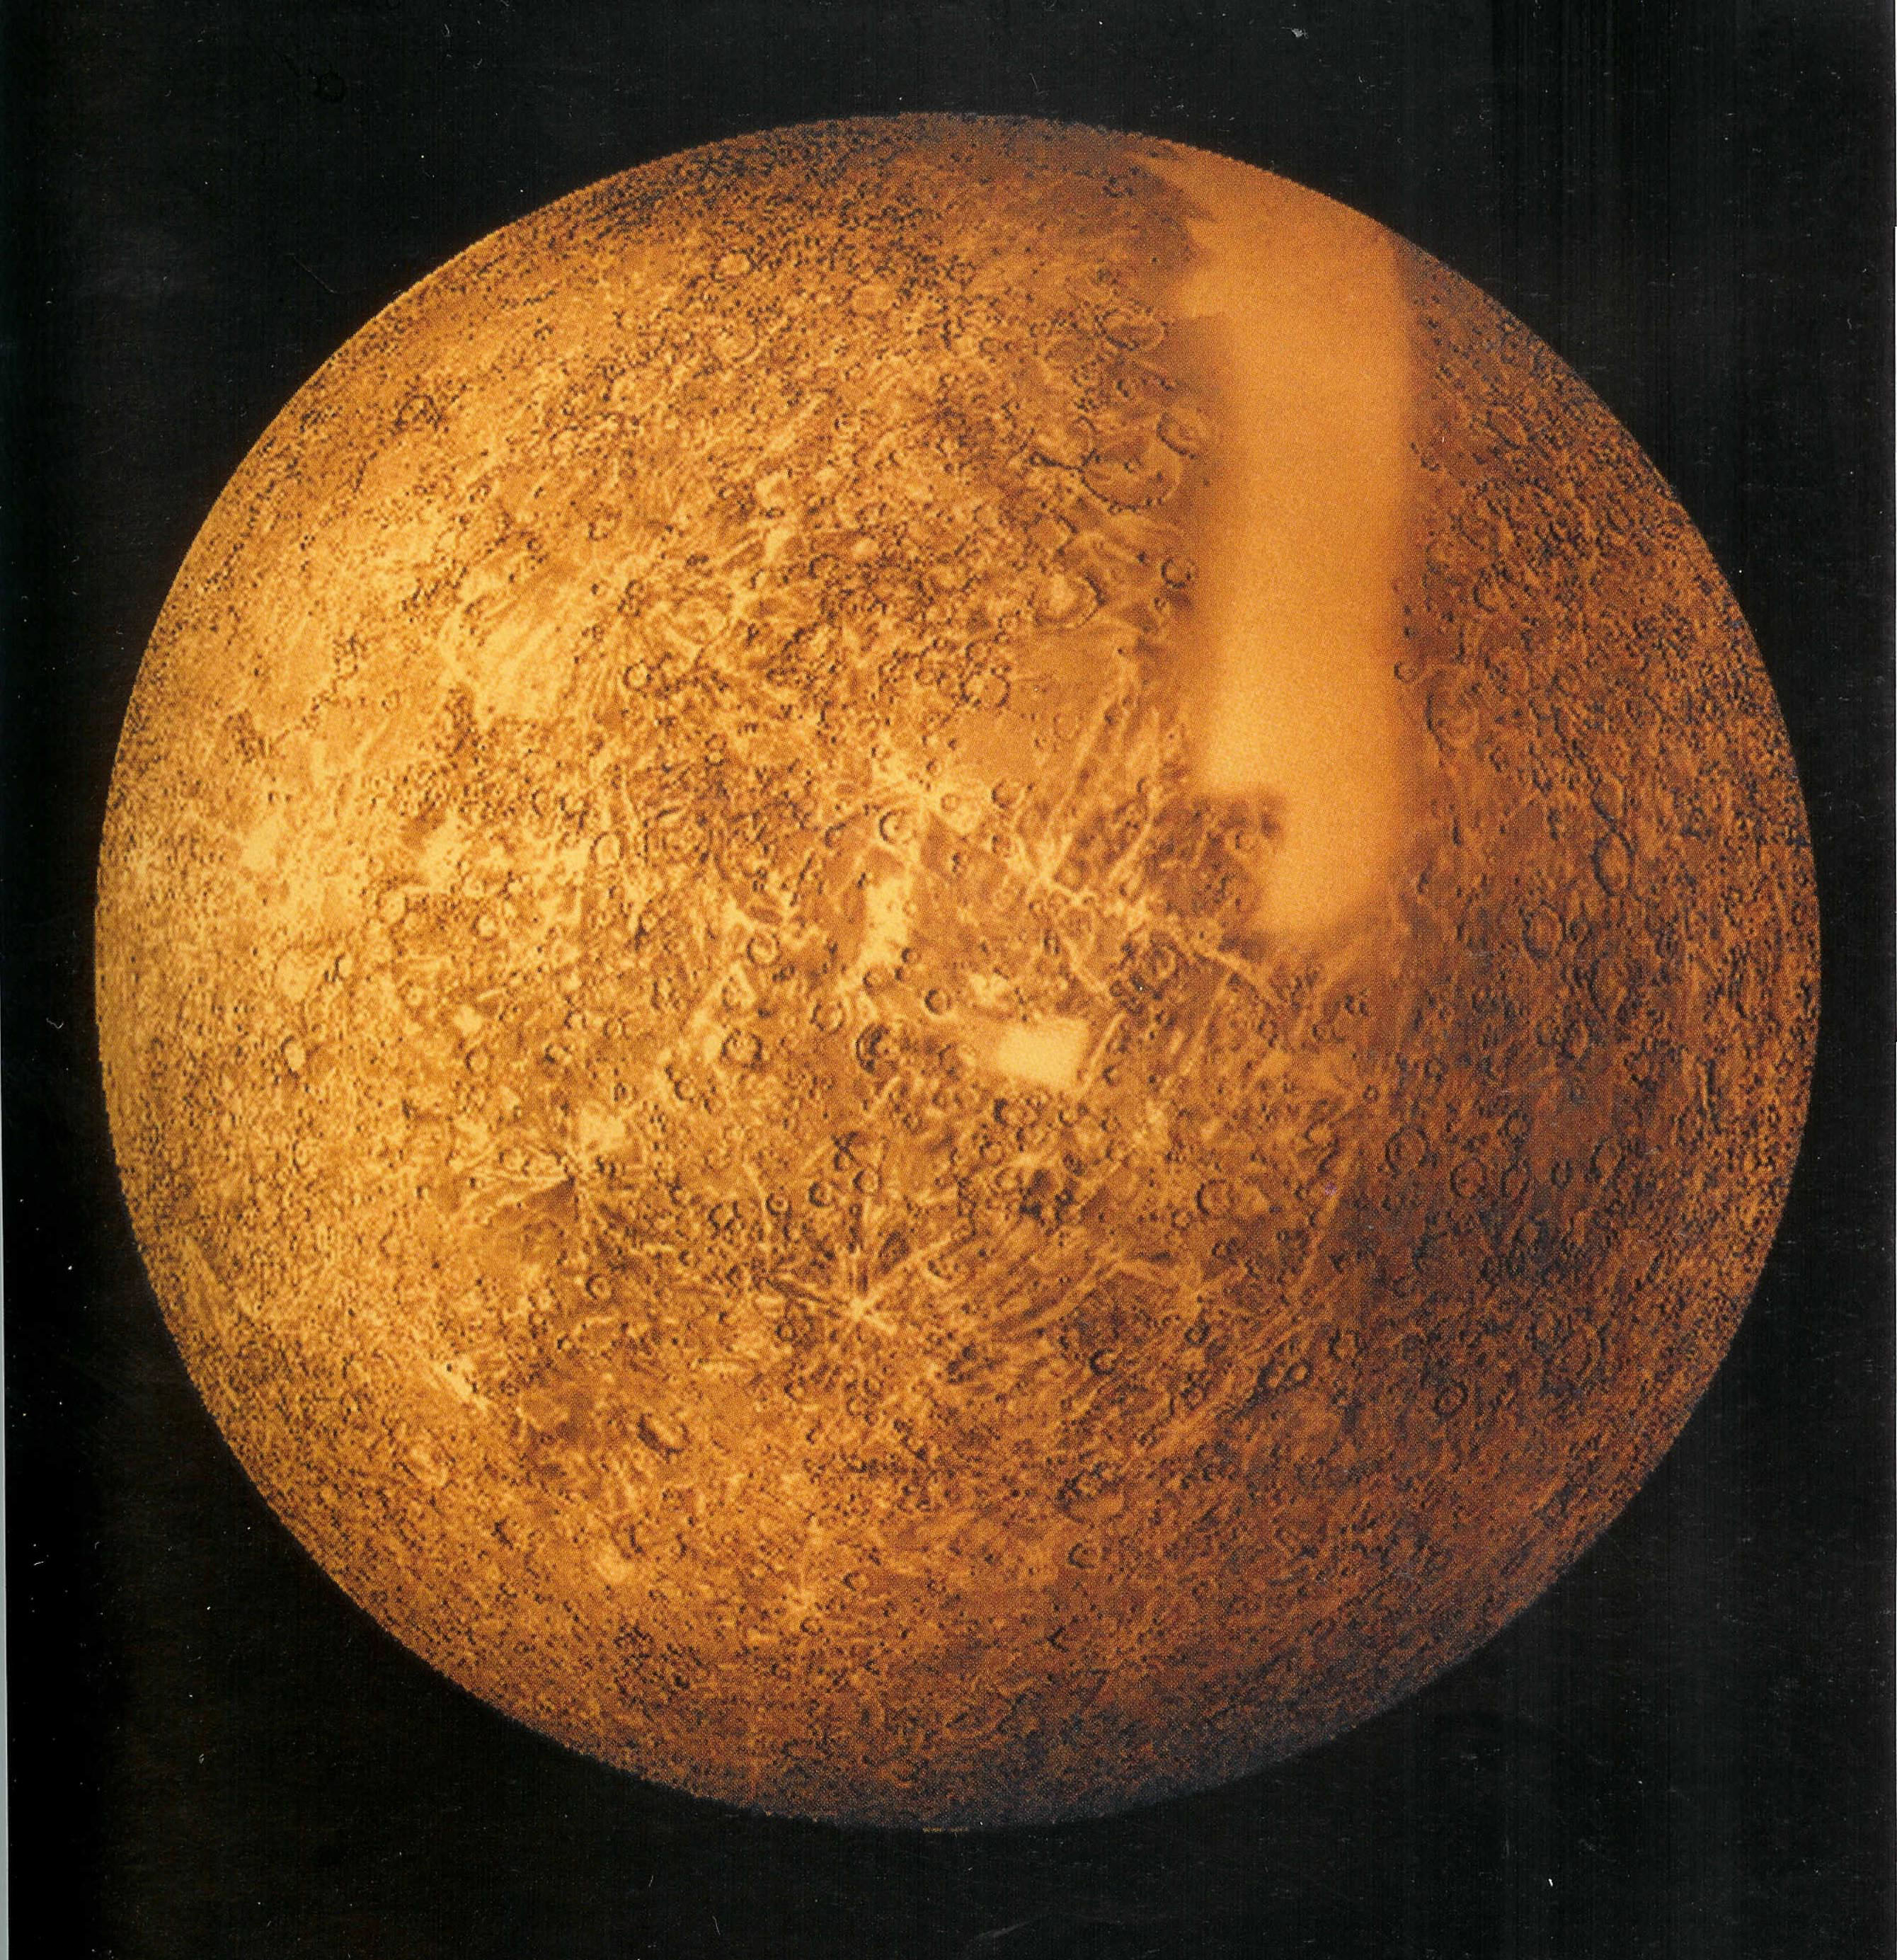 mercury pictures from nasa - photo #23